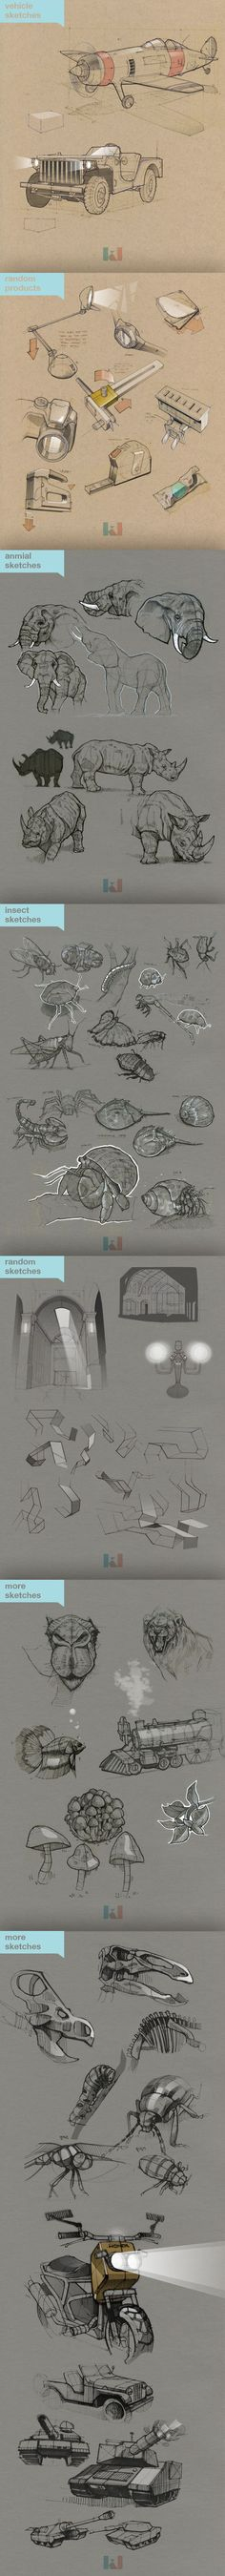 Sketches by Kidong Kwon, via Behance: